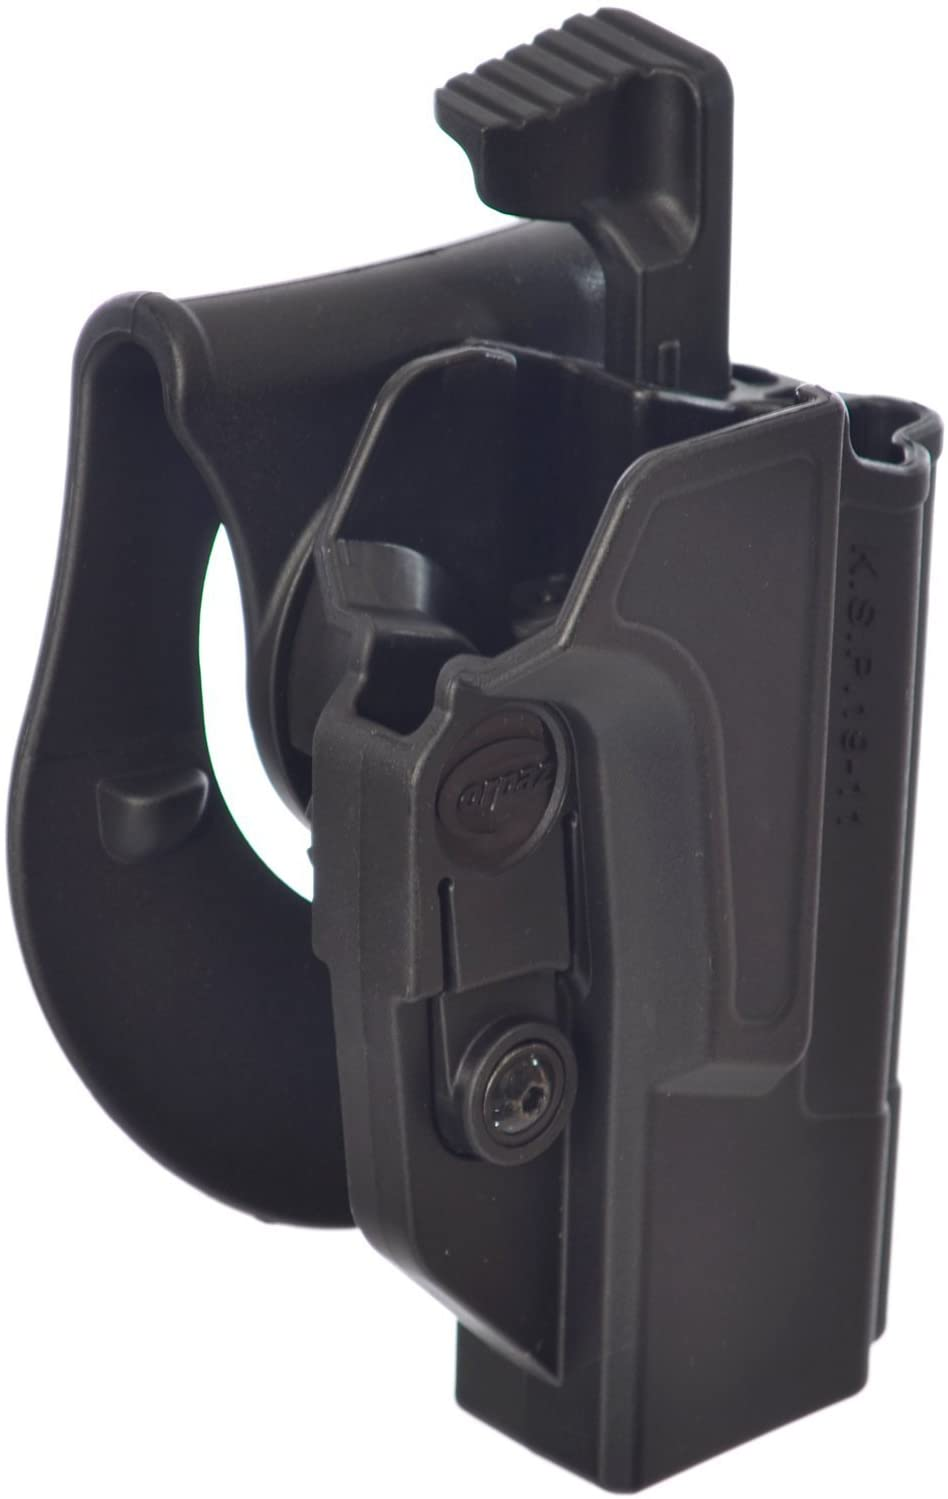 Orpaz Defense Level2 Retention Tactical Thumb Release Safety Holster Tention Adjustment Rotating 360 ROTO Paddle for All 1911 with/Without Picatinny Rail - Colt Sig Kimber S&W Taurus Ruger & More